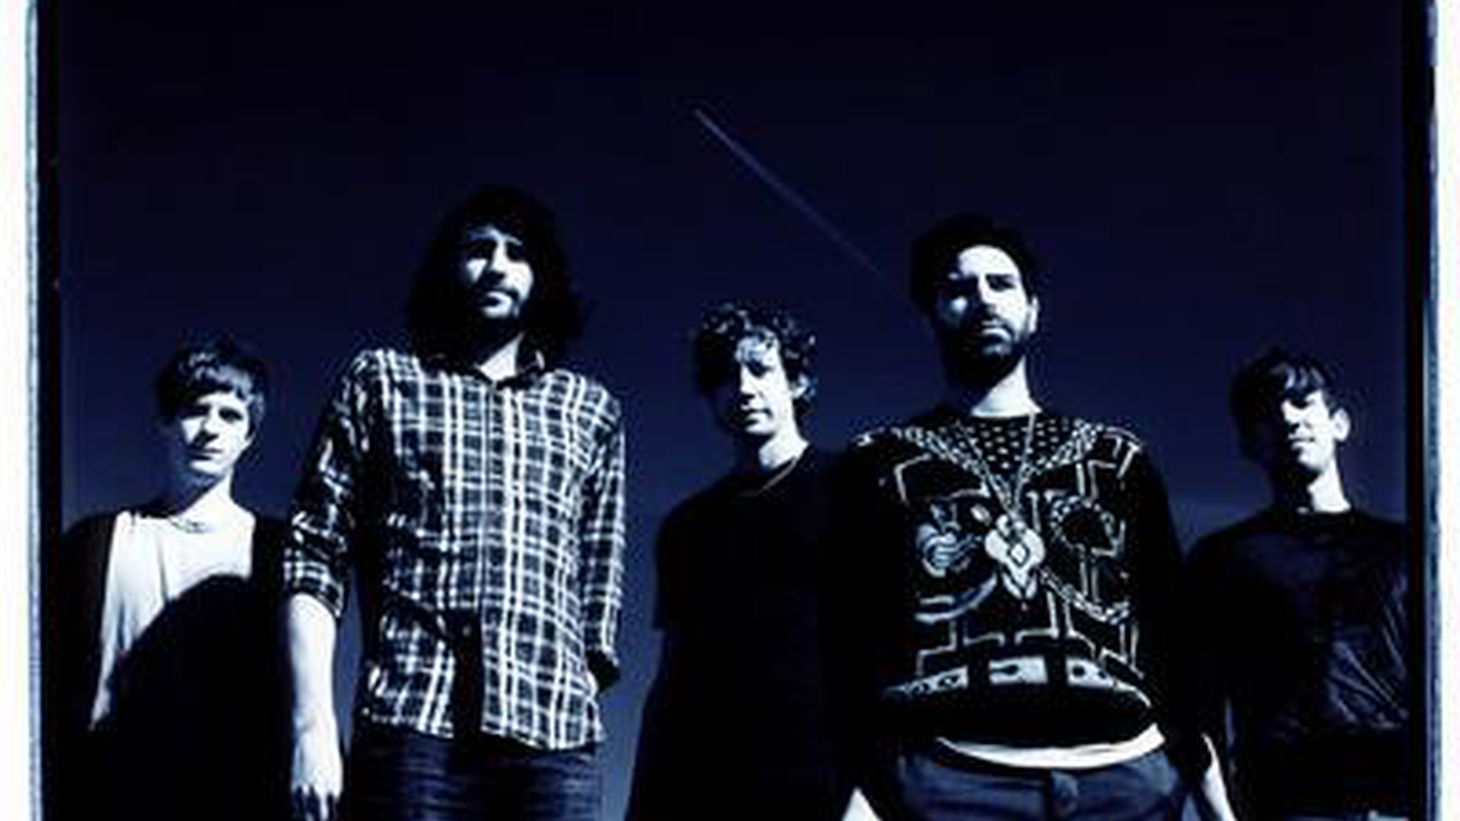 """Foals share a house in Oxford where they write and make music together. A bathroom turns into a vocal booth, lyrics are written in the basement, and their shared experience helped them pen their sophomore release, Total Life Forever, a trippy upbeat set of songs. Today's Top Tune is the title track """"Total Life Forever."""""""